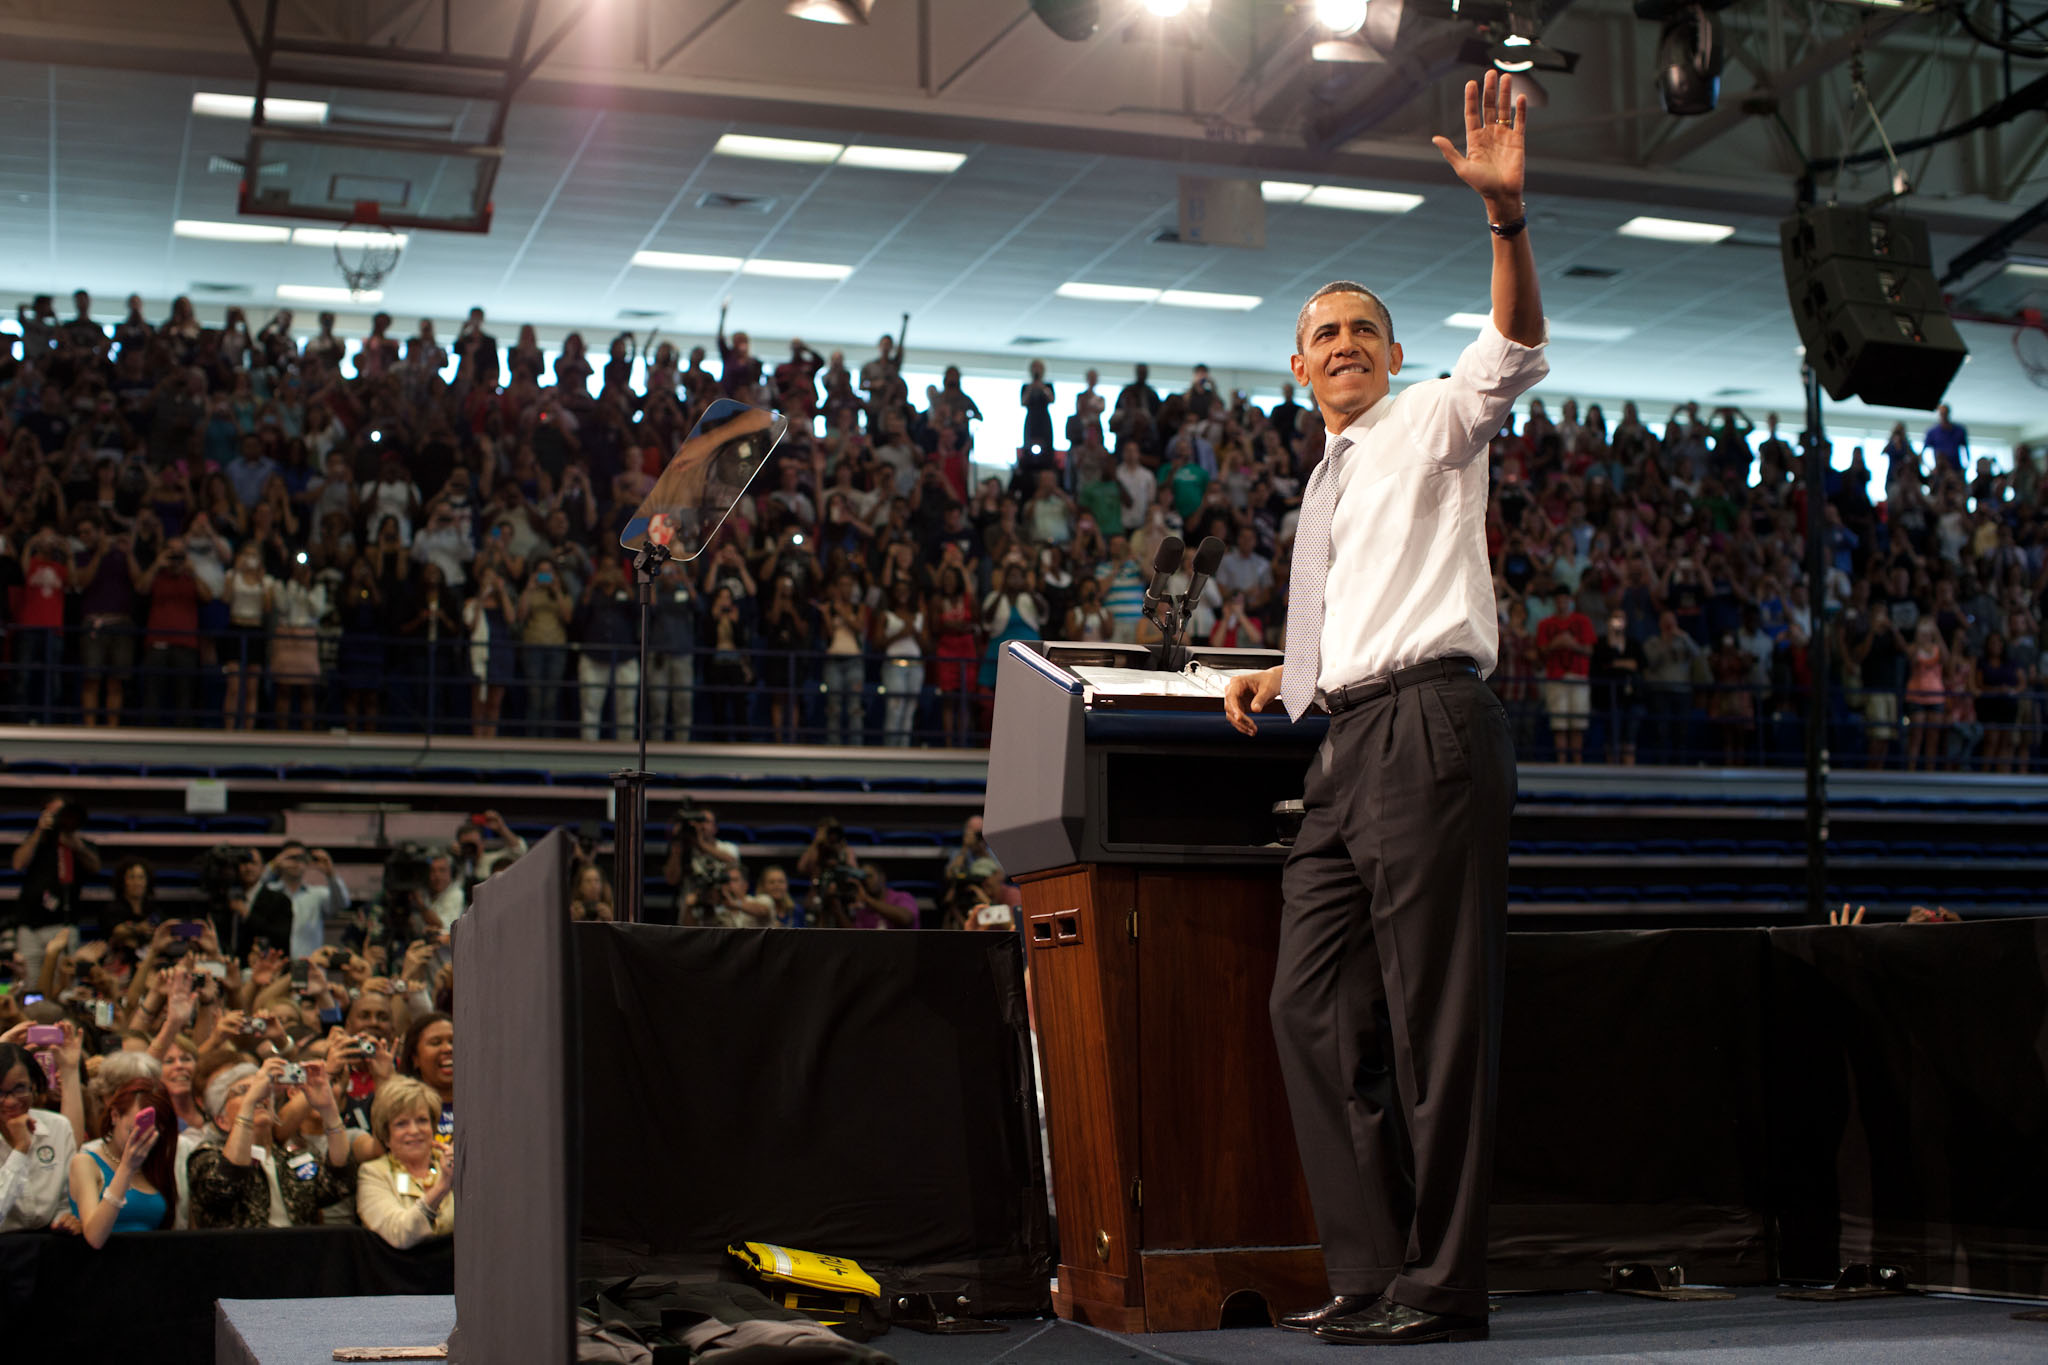 President Obama Delivers Remarks at Florida Atlantic University